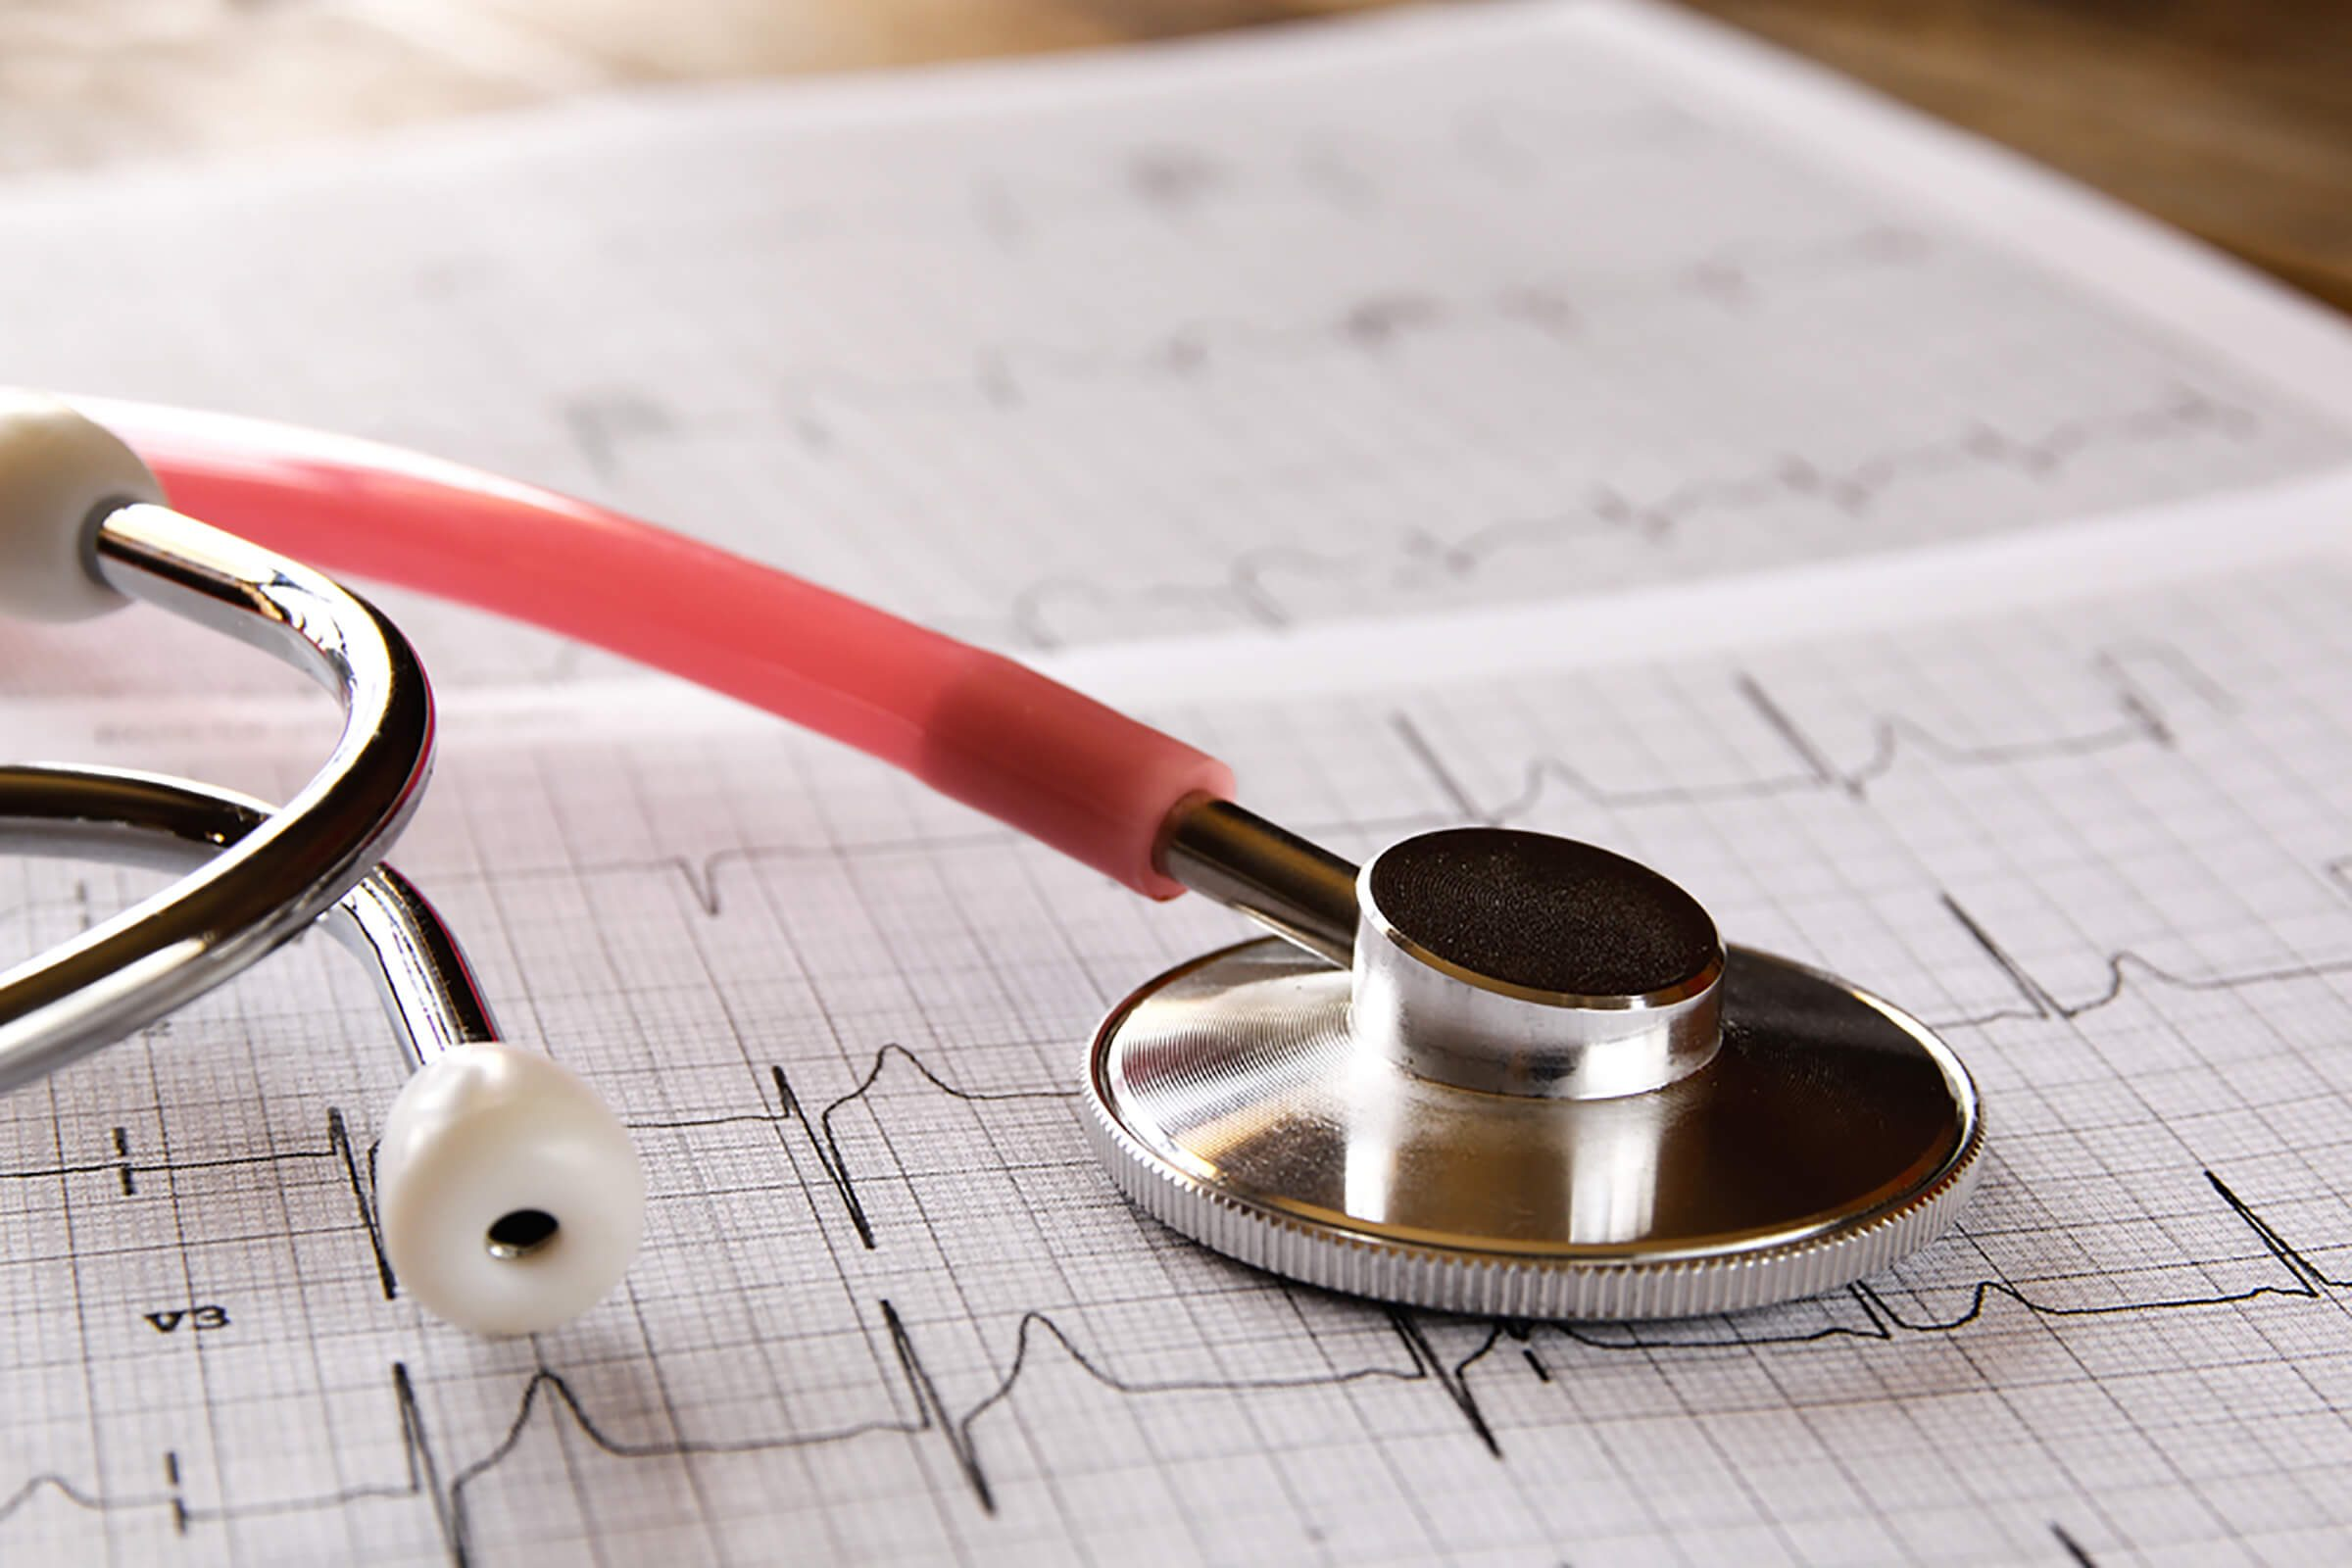 type 2 diabetes complications | Stethoscope on ekg printout